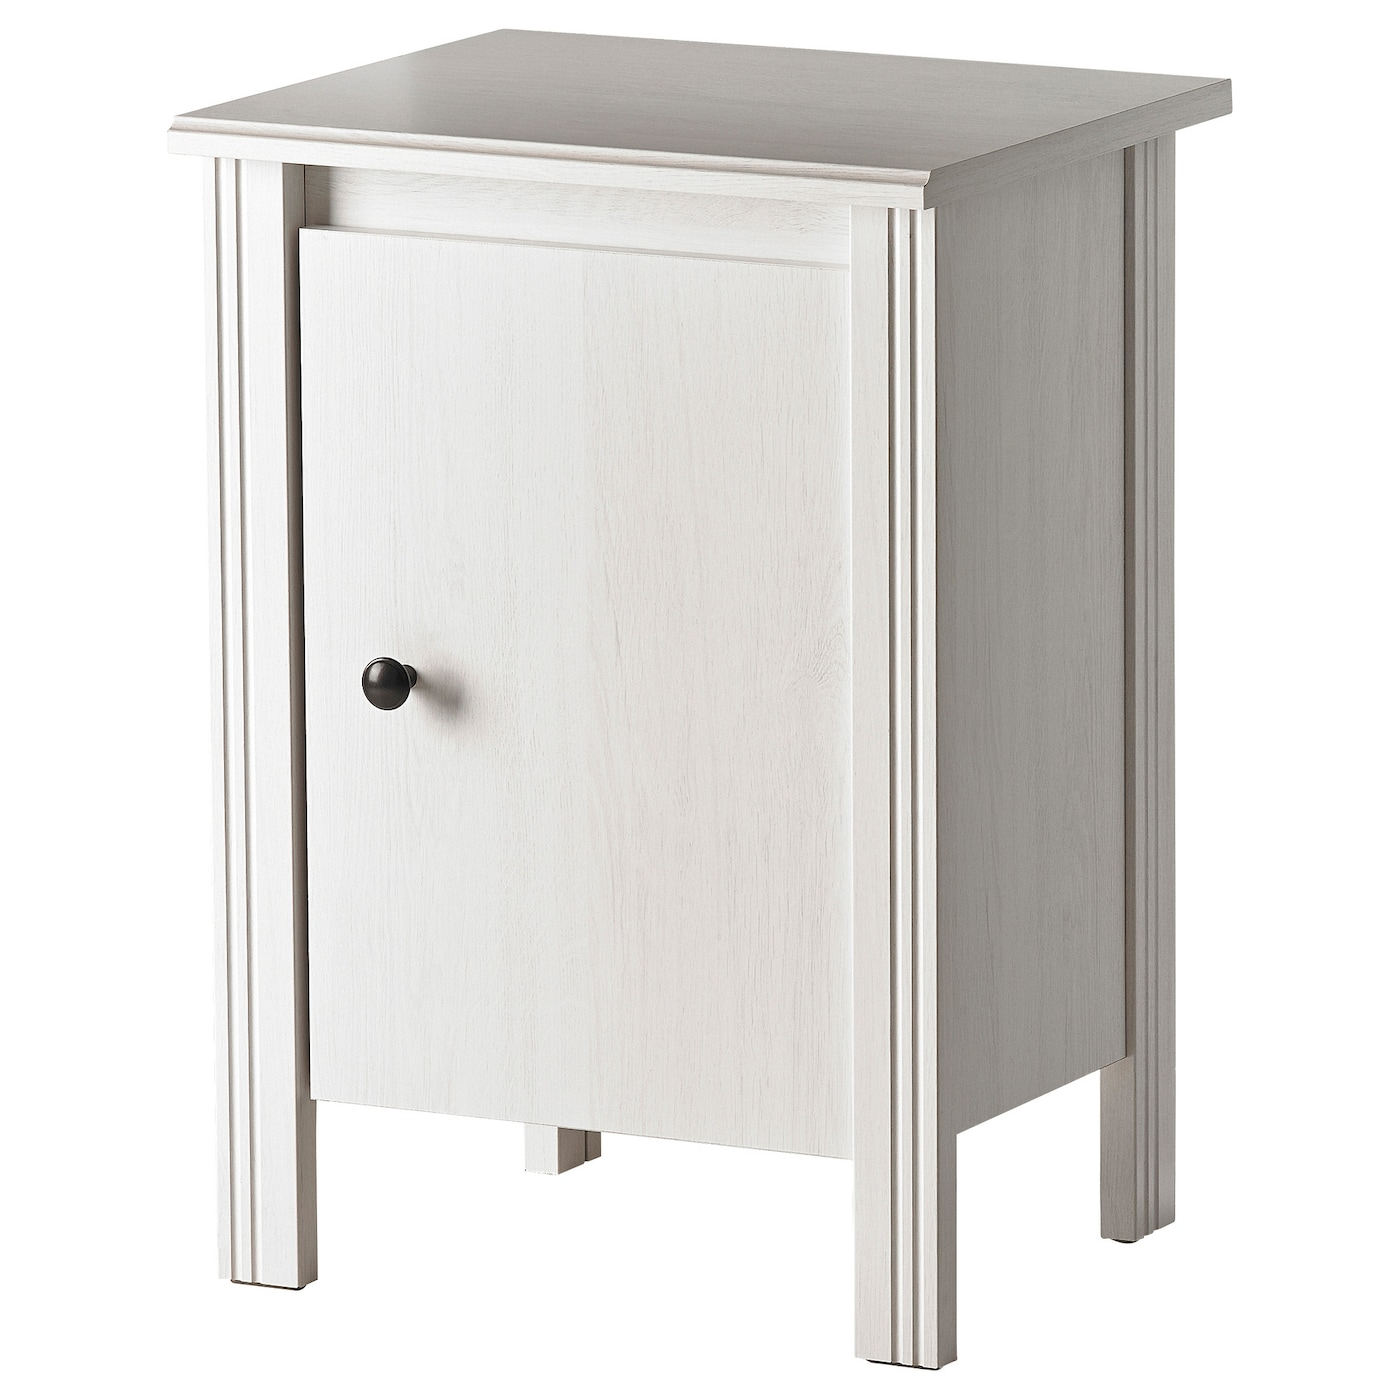 Brusali bedside table white 44x36 cm ikea for Table 70 cm hauteur